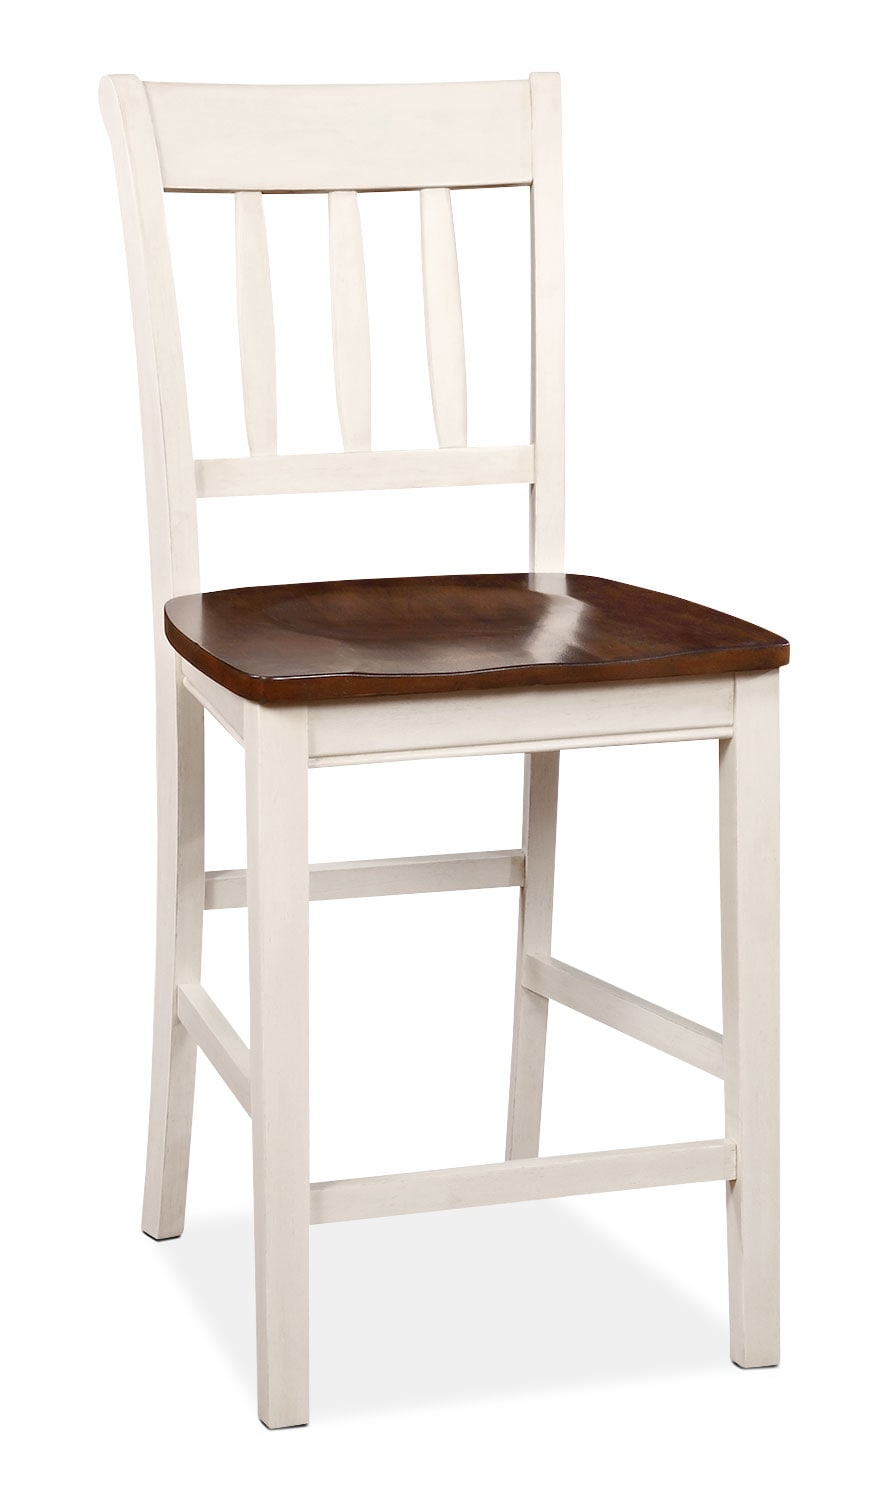 Dining Room Furniture - Nyla Counter-Height Dining Chair – Antique White and Cherry